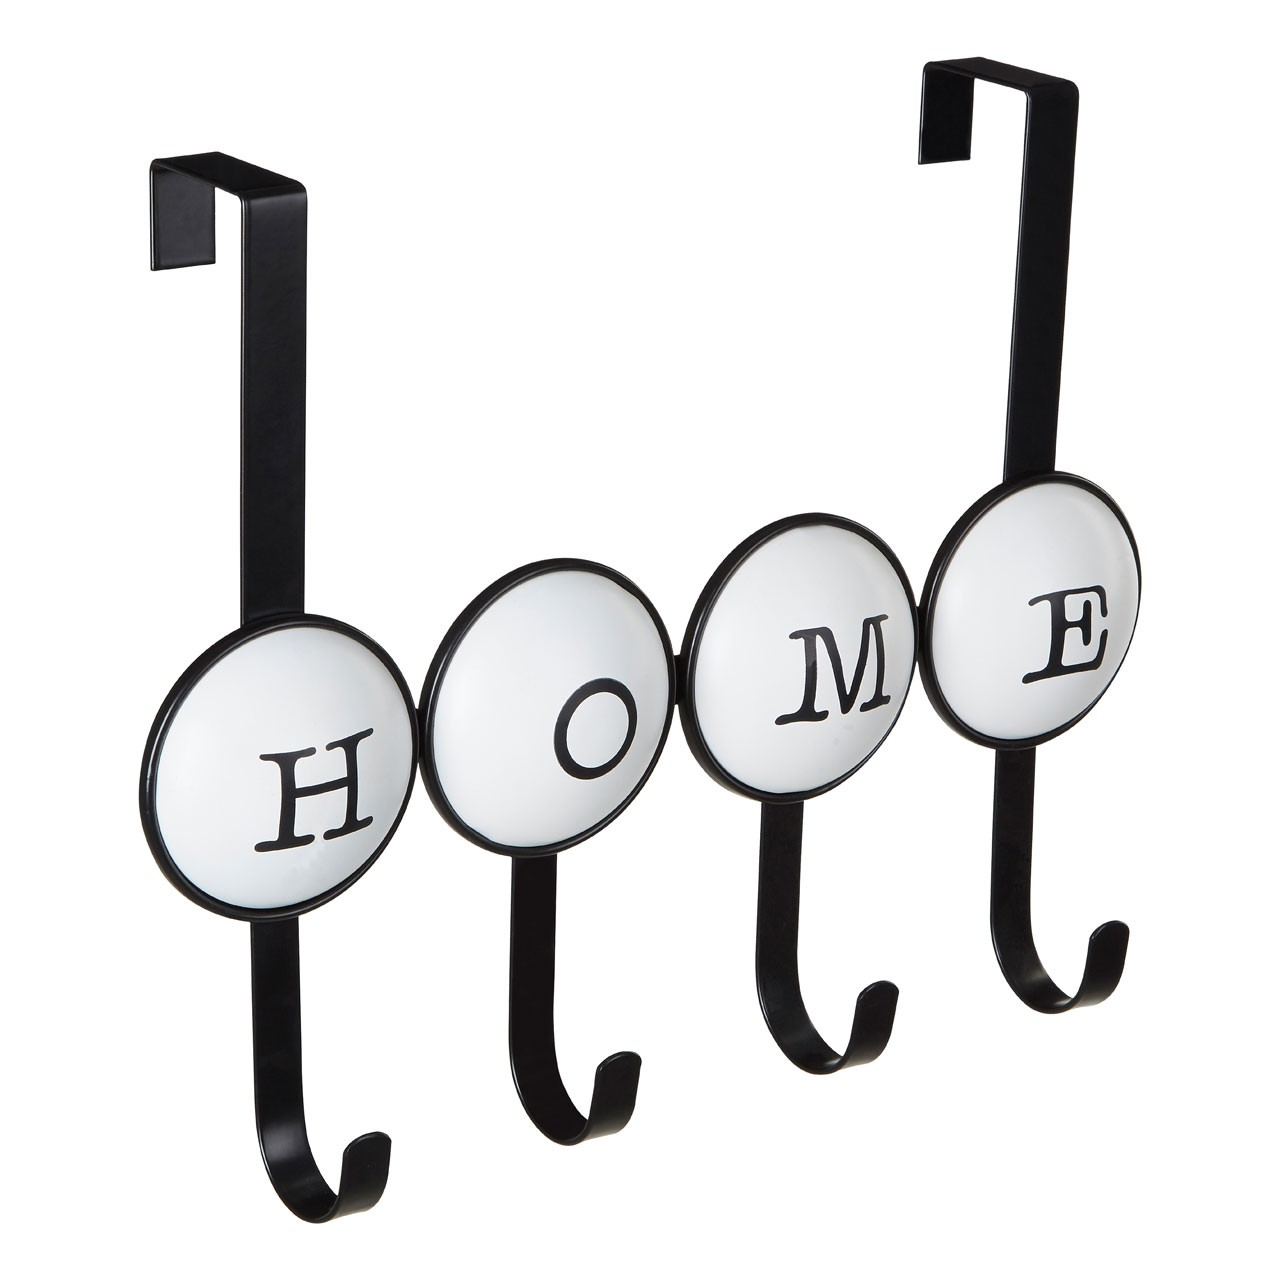 Prime Furnishing 4-Hook Over Door Home Hanger, White/Black